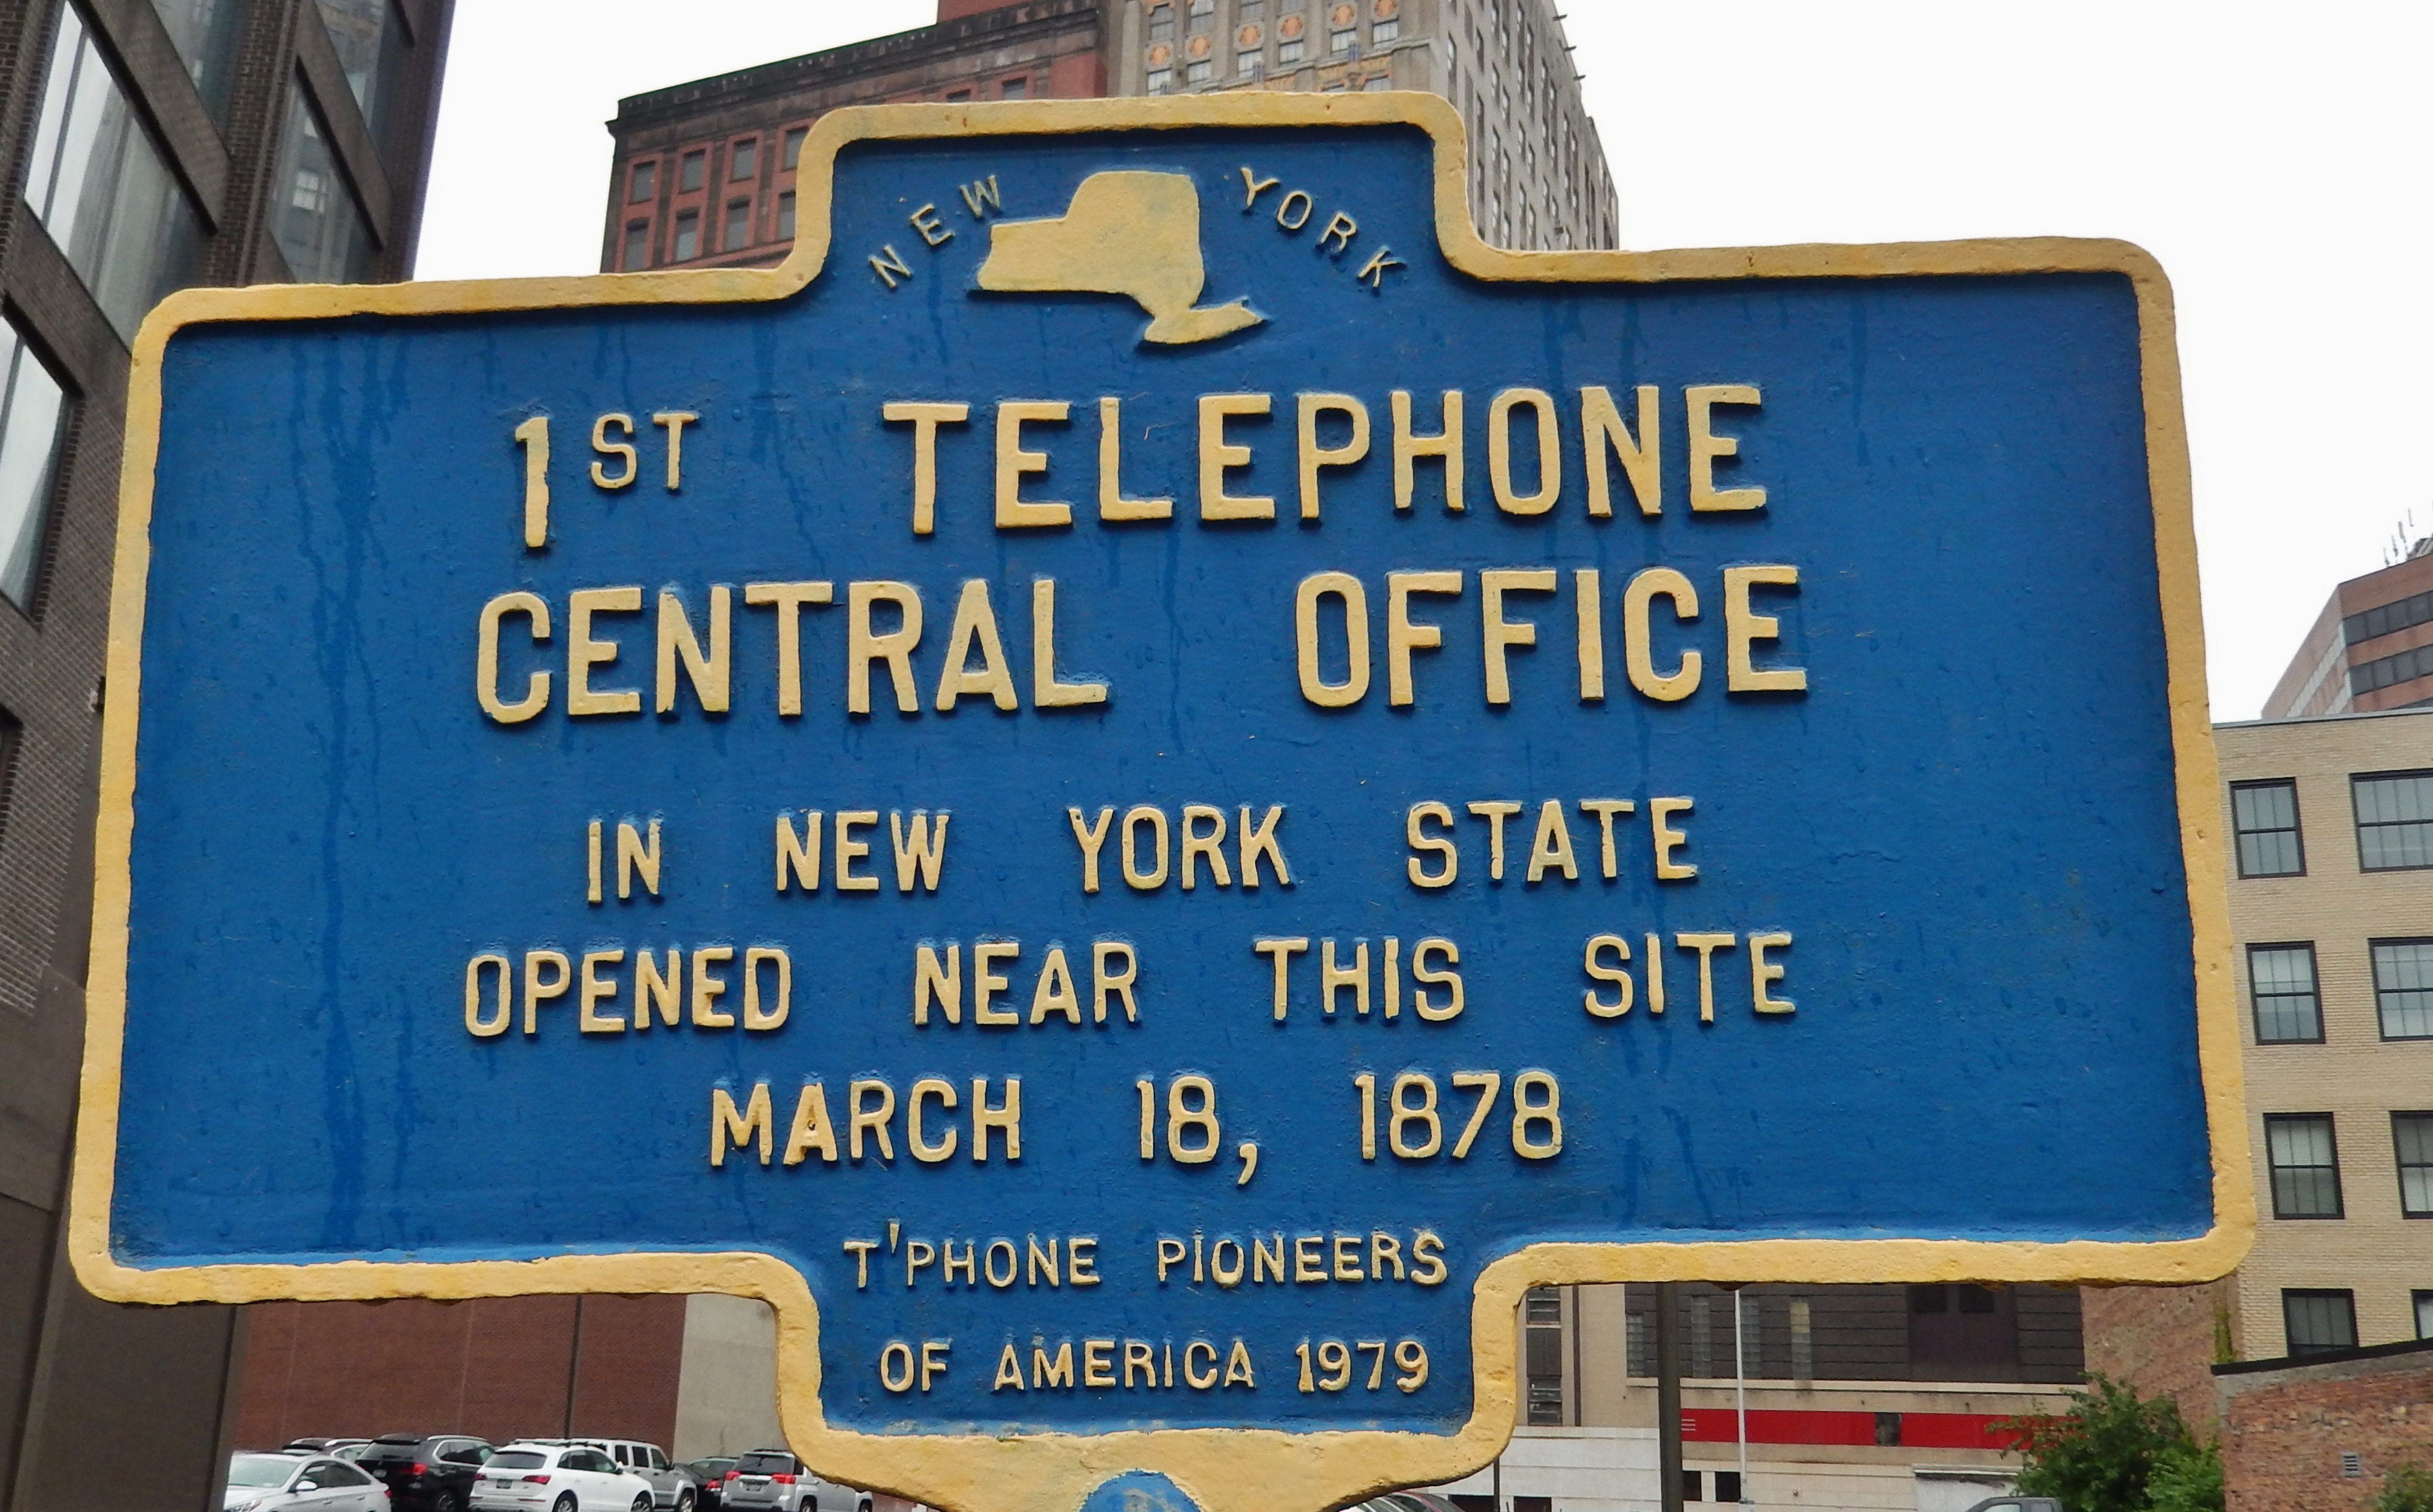 1st Telephone Central Office in New York State Marker